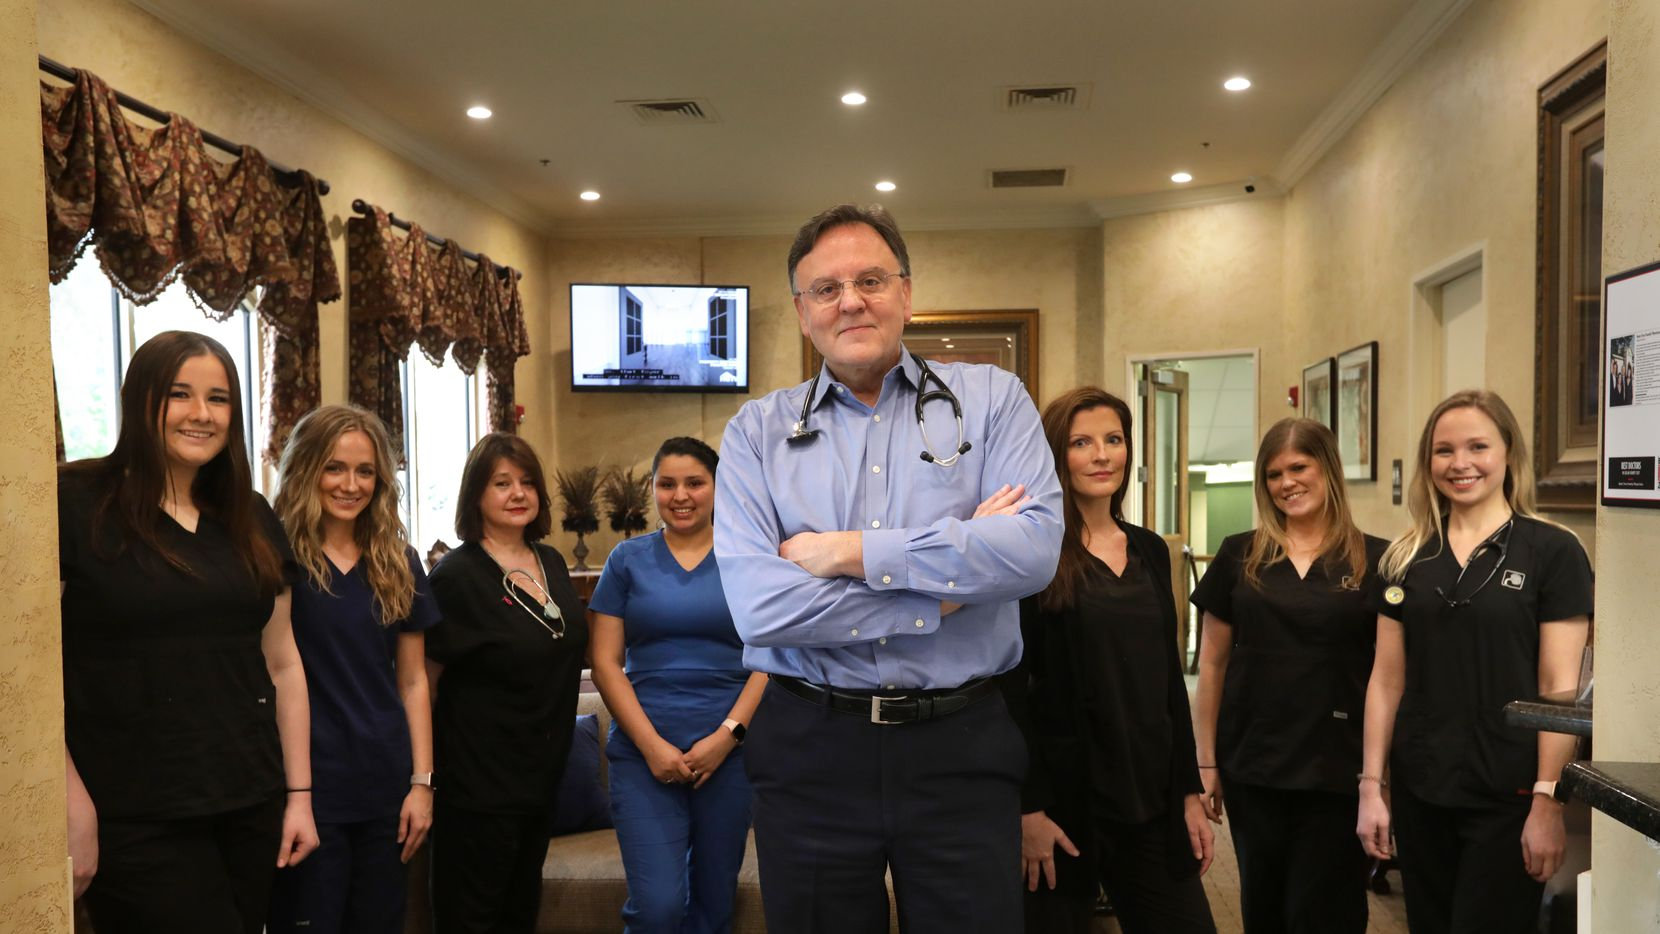 Dr. Guy Culpepper, seen here with some of his staff, has furloughed 70 employees at Bent Tree Family Physicians in Frisco and North Dallas. Revenue has fallen sharply during the coronavirus. (Jason Janik/Special Contributor)